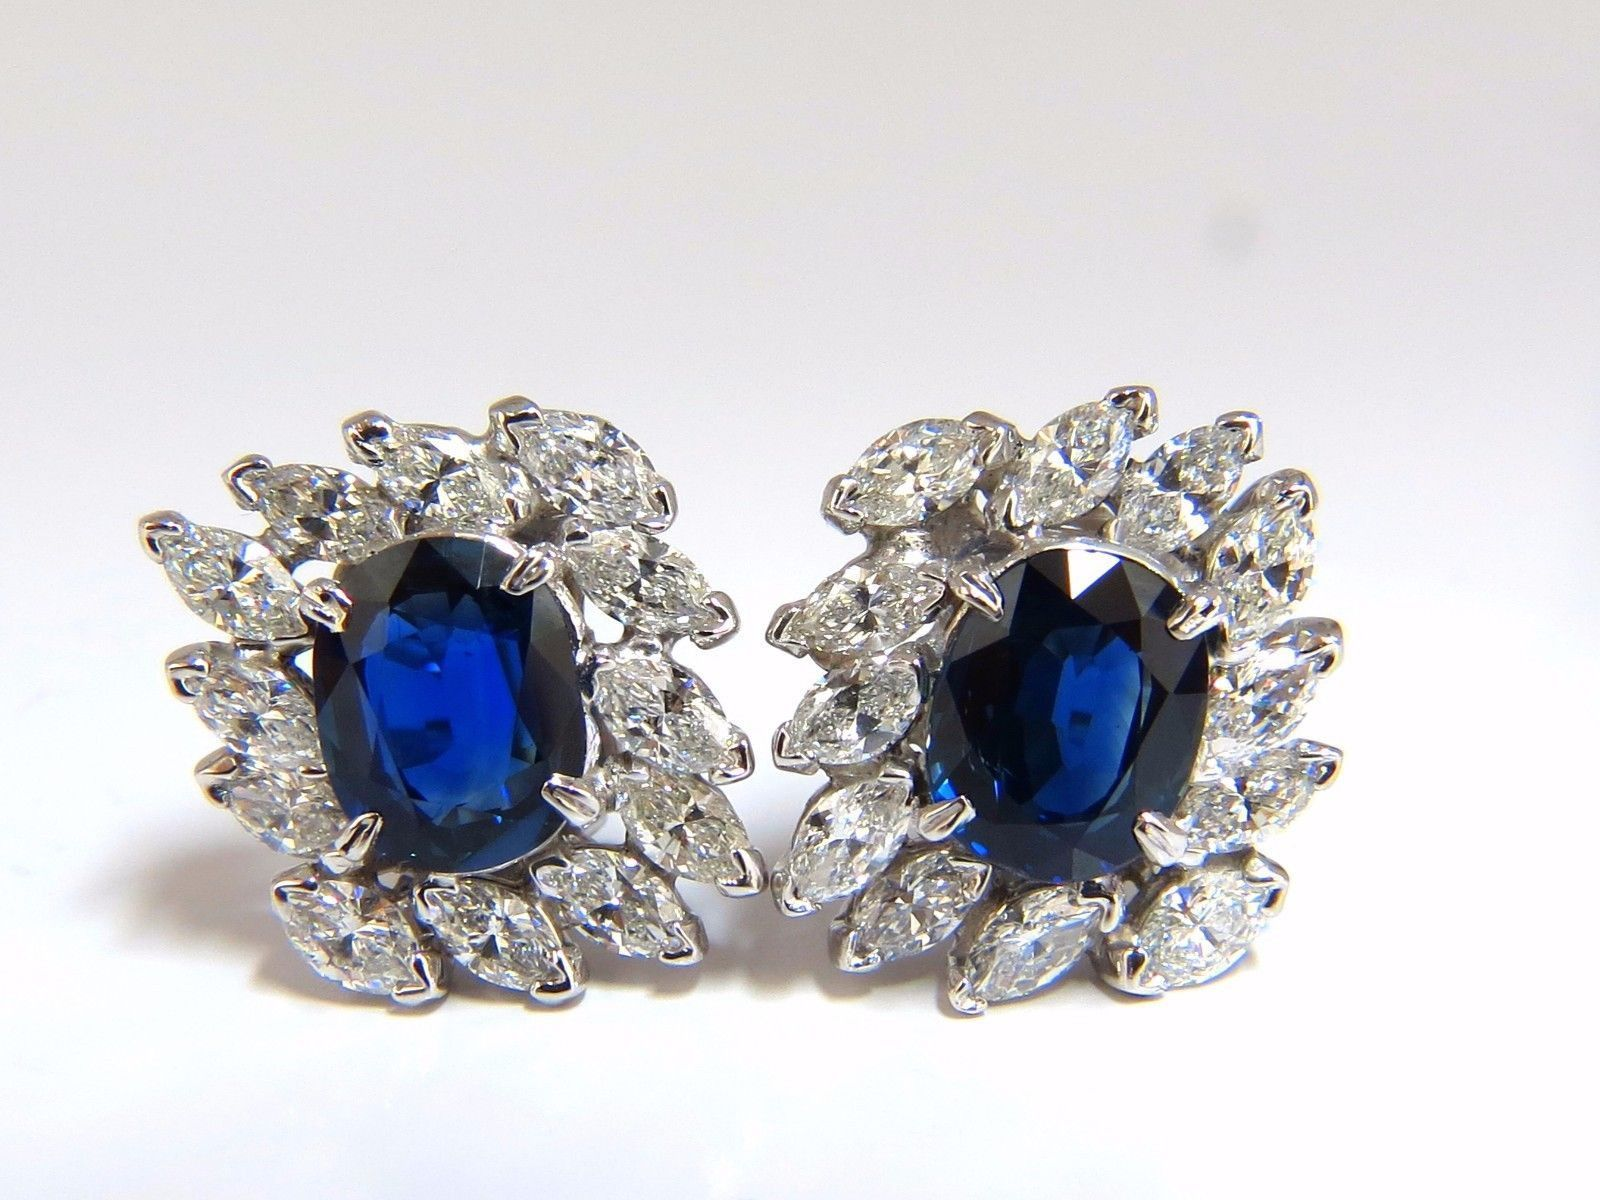 GIA Certified 11 16ct Natural Royal Blue sapphire diamond earrings